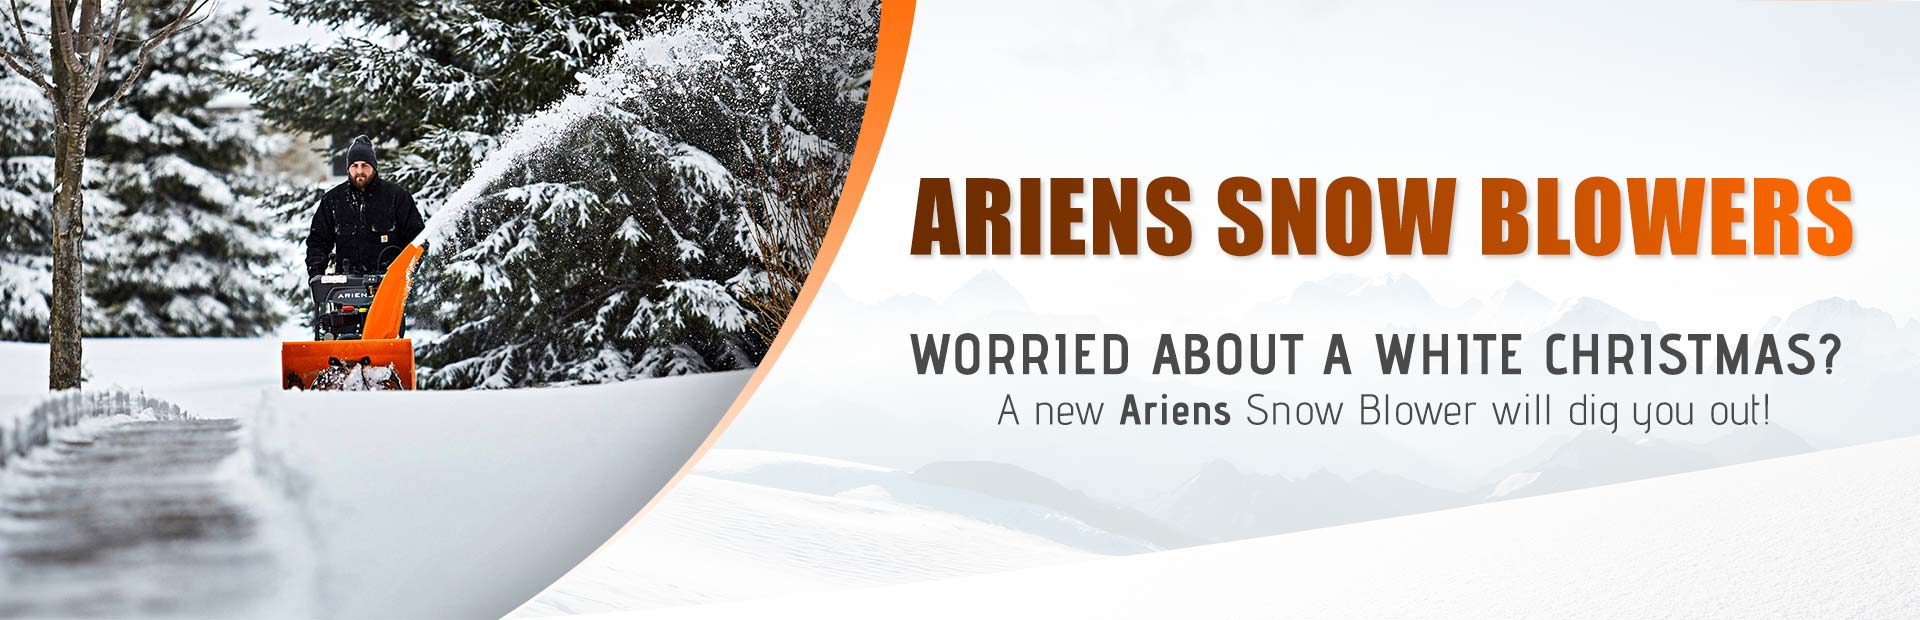 Worried about a white Christmas? A new Ariens snow blower will dig you out!